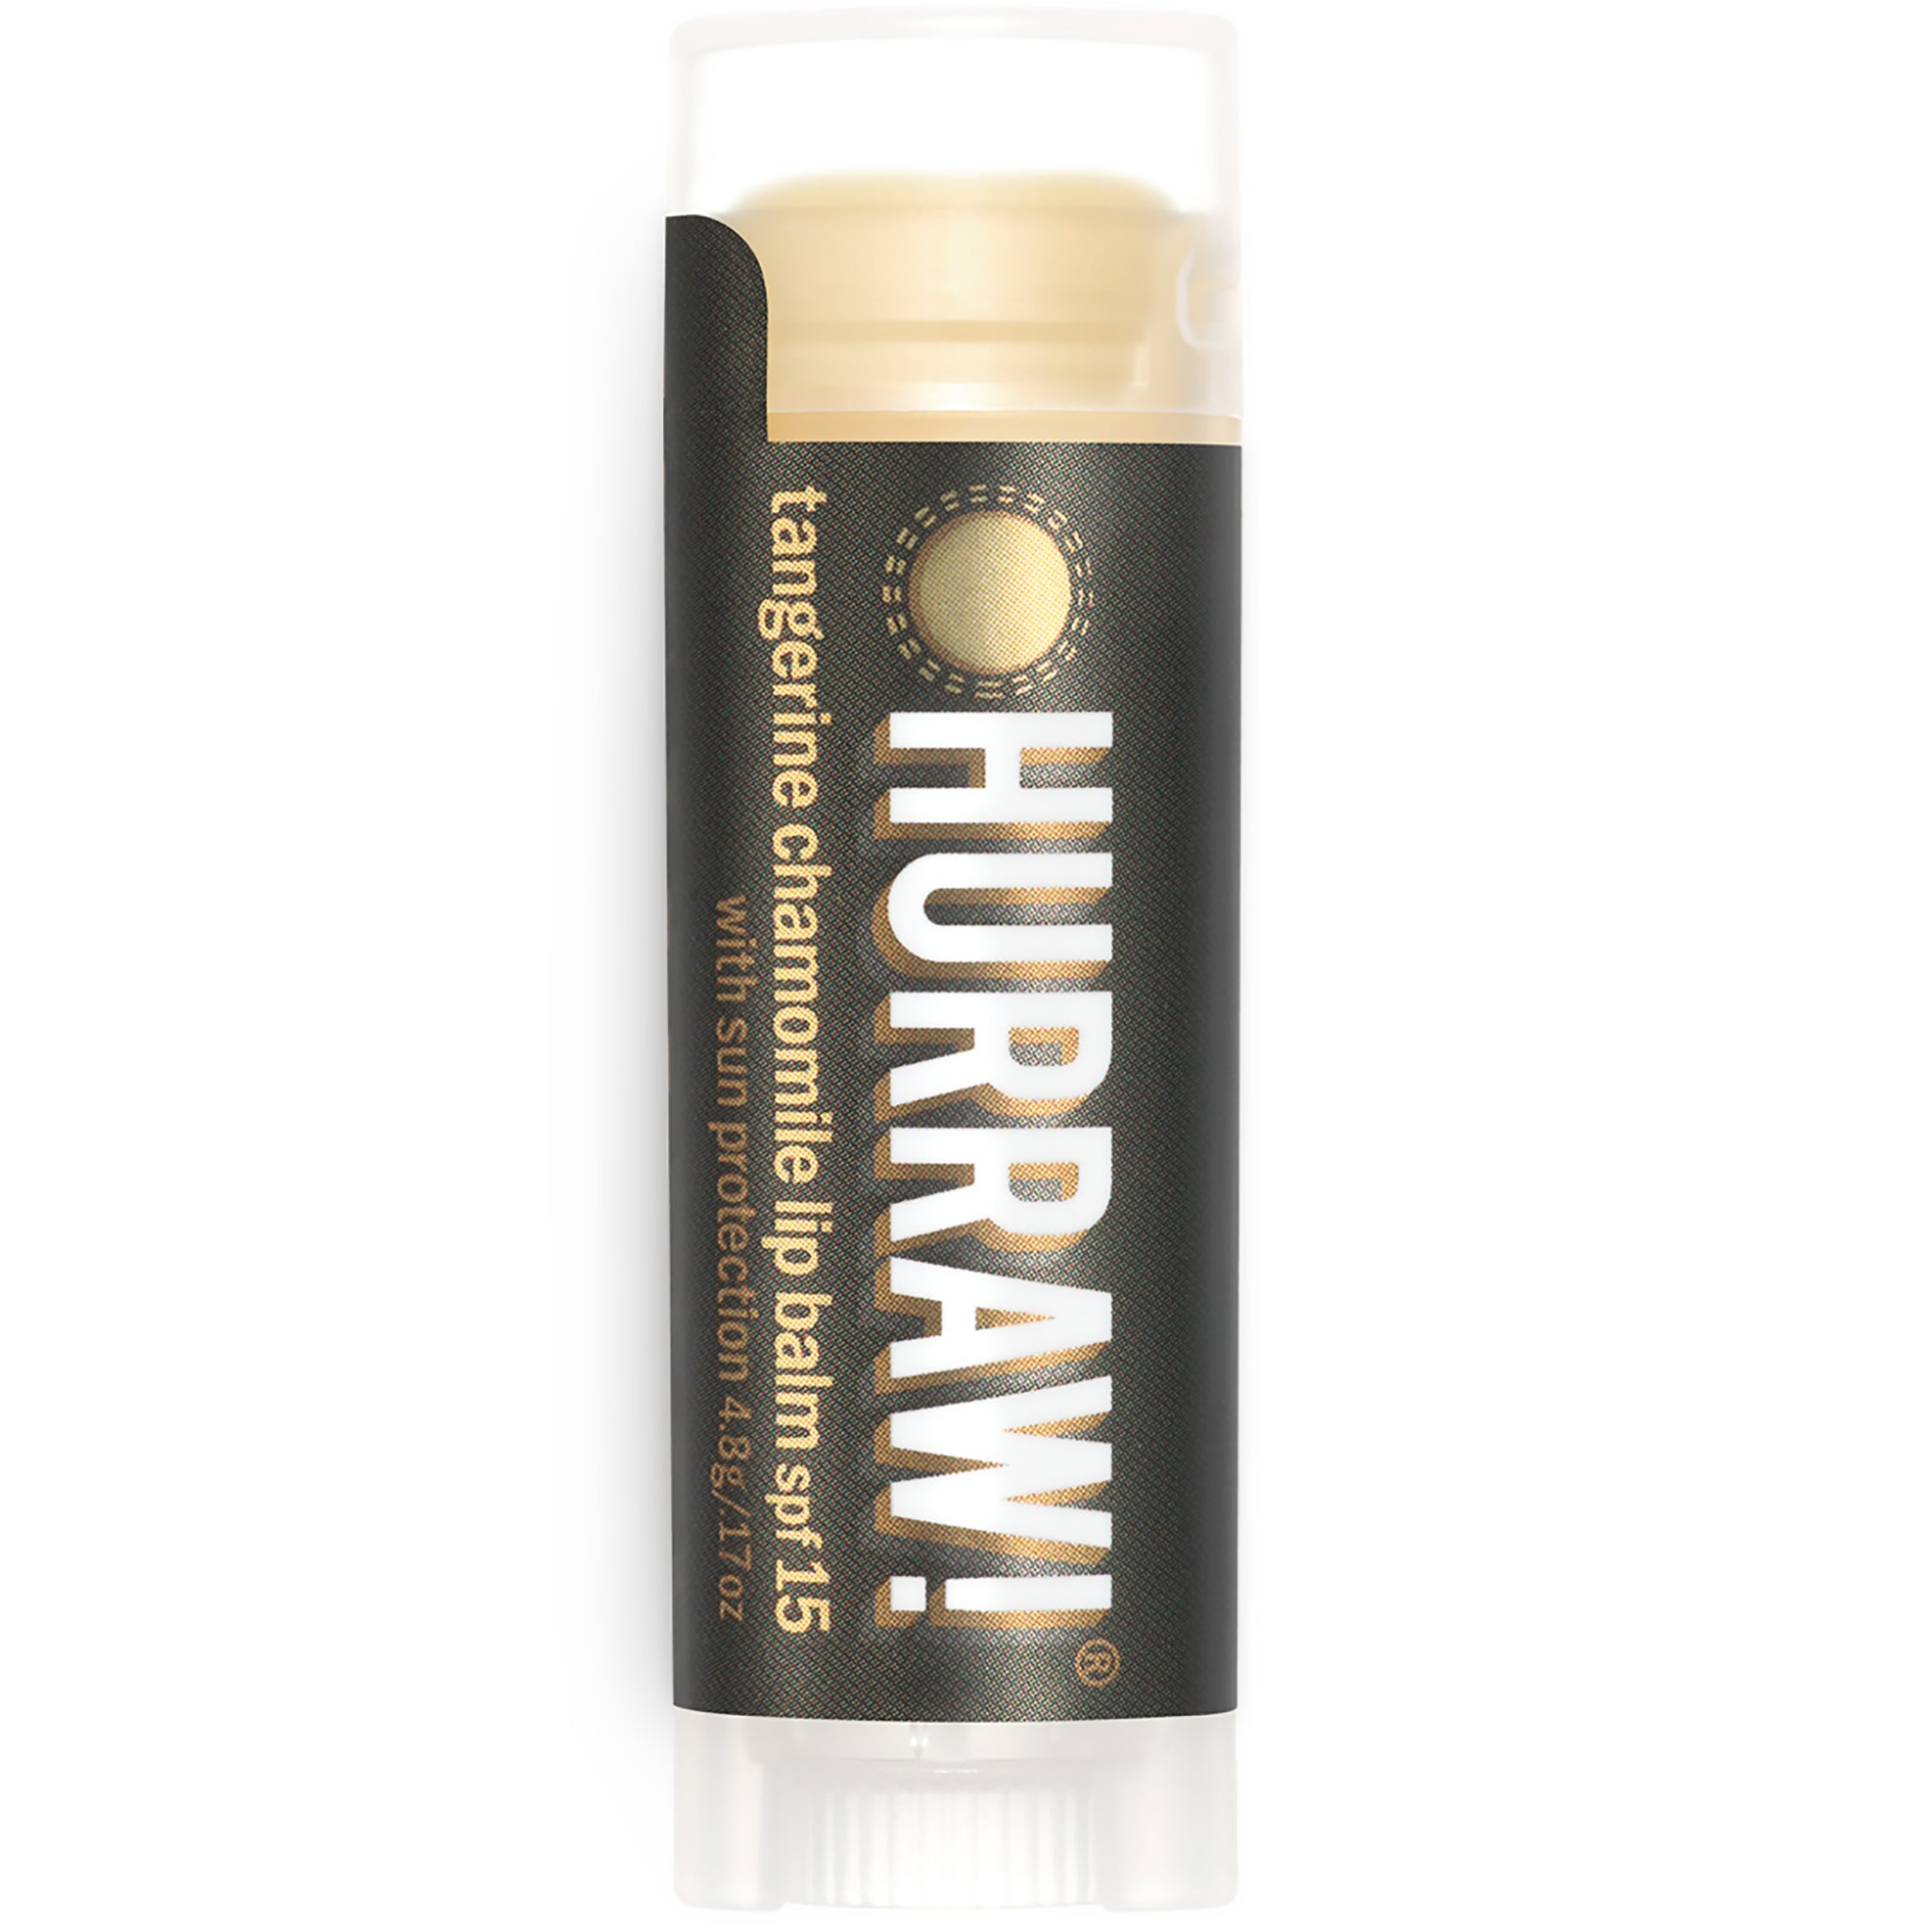 Sun Protection Lip Balm SPF15 - any 3 for £12